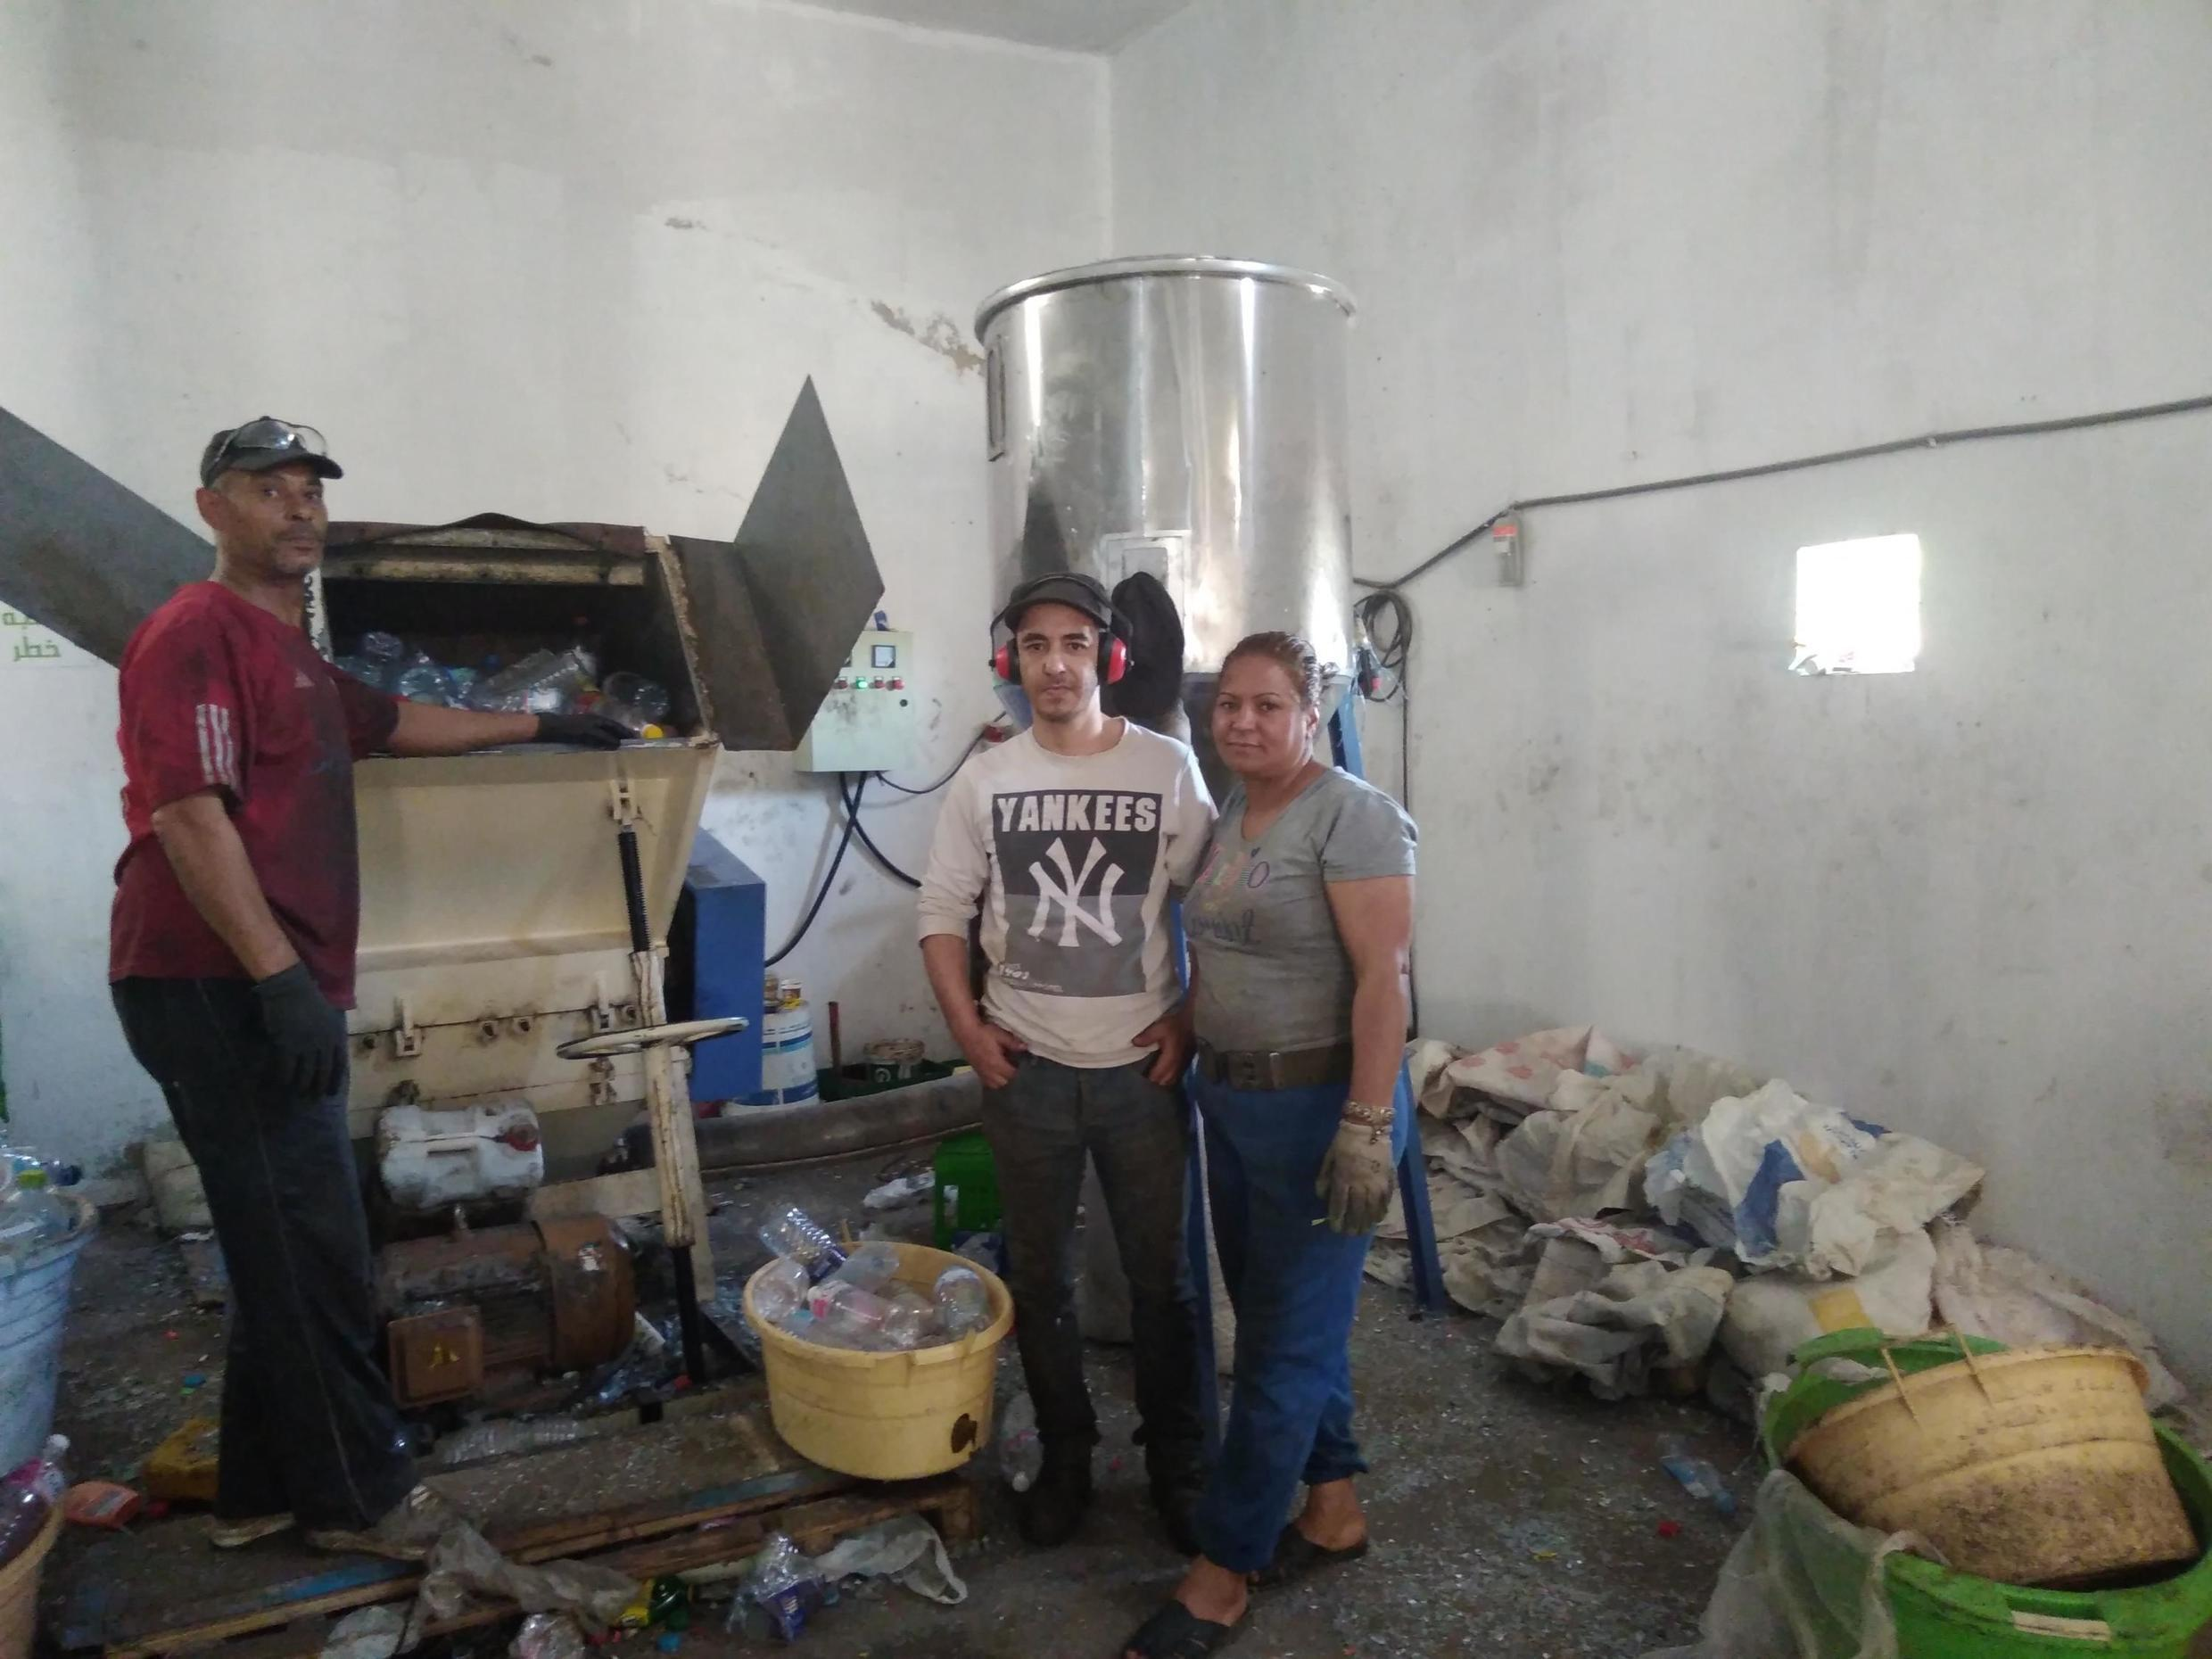 Workers from the 'Barbechas' association in Tunis, Tunisia